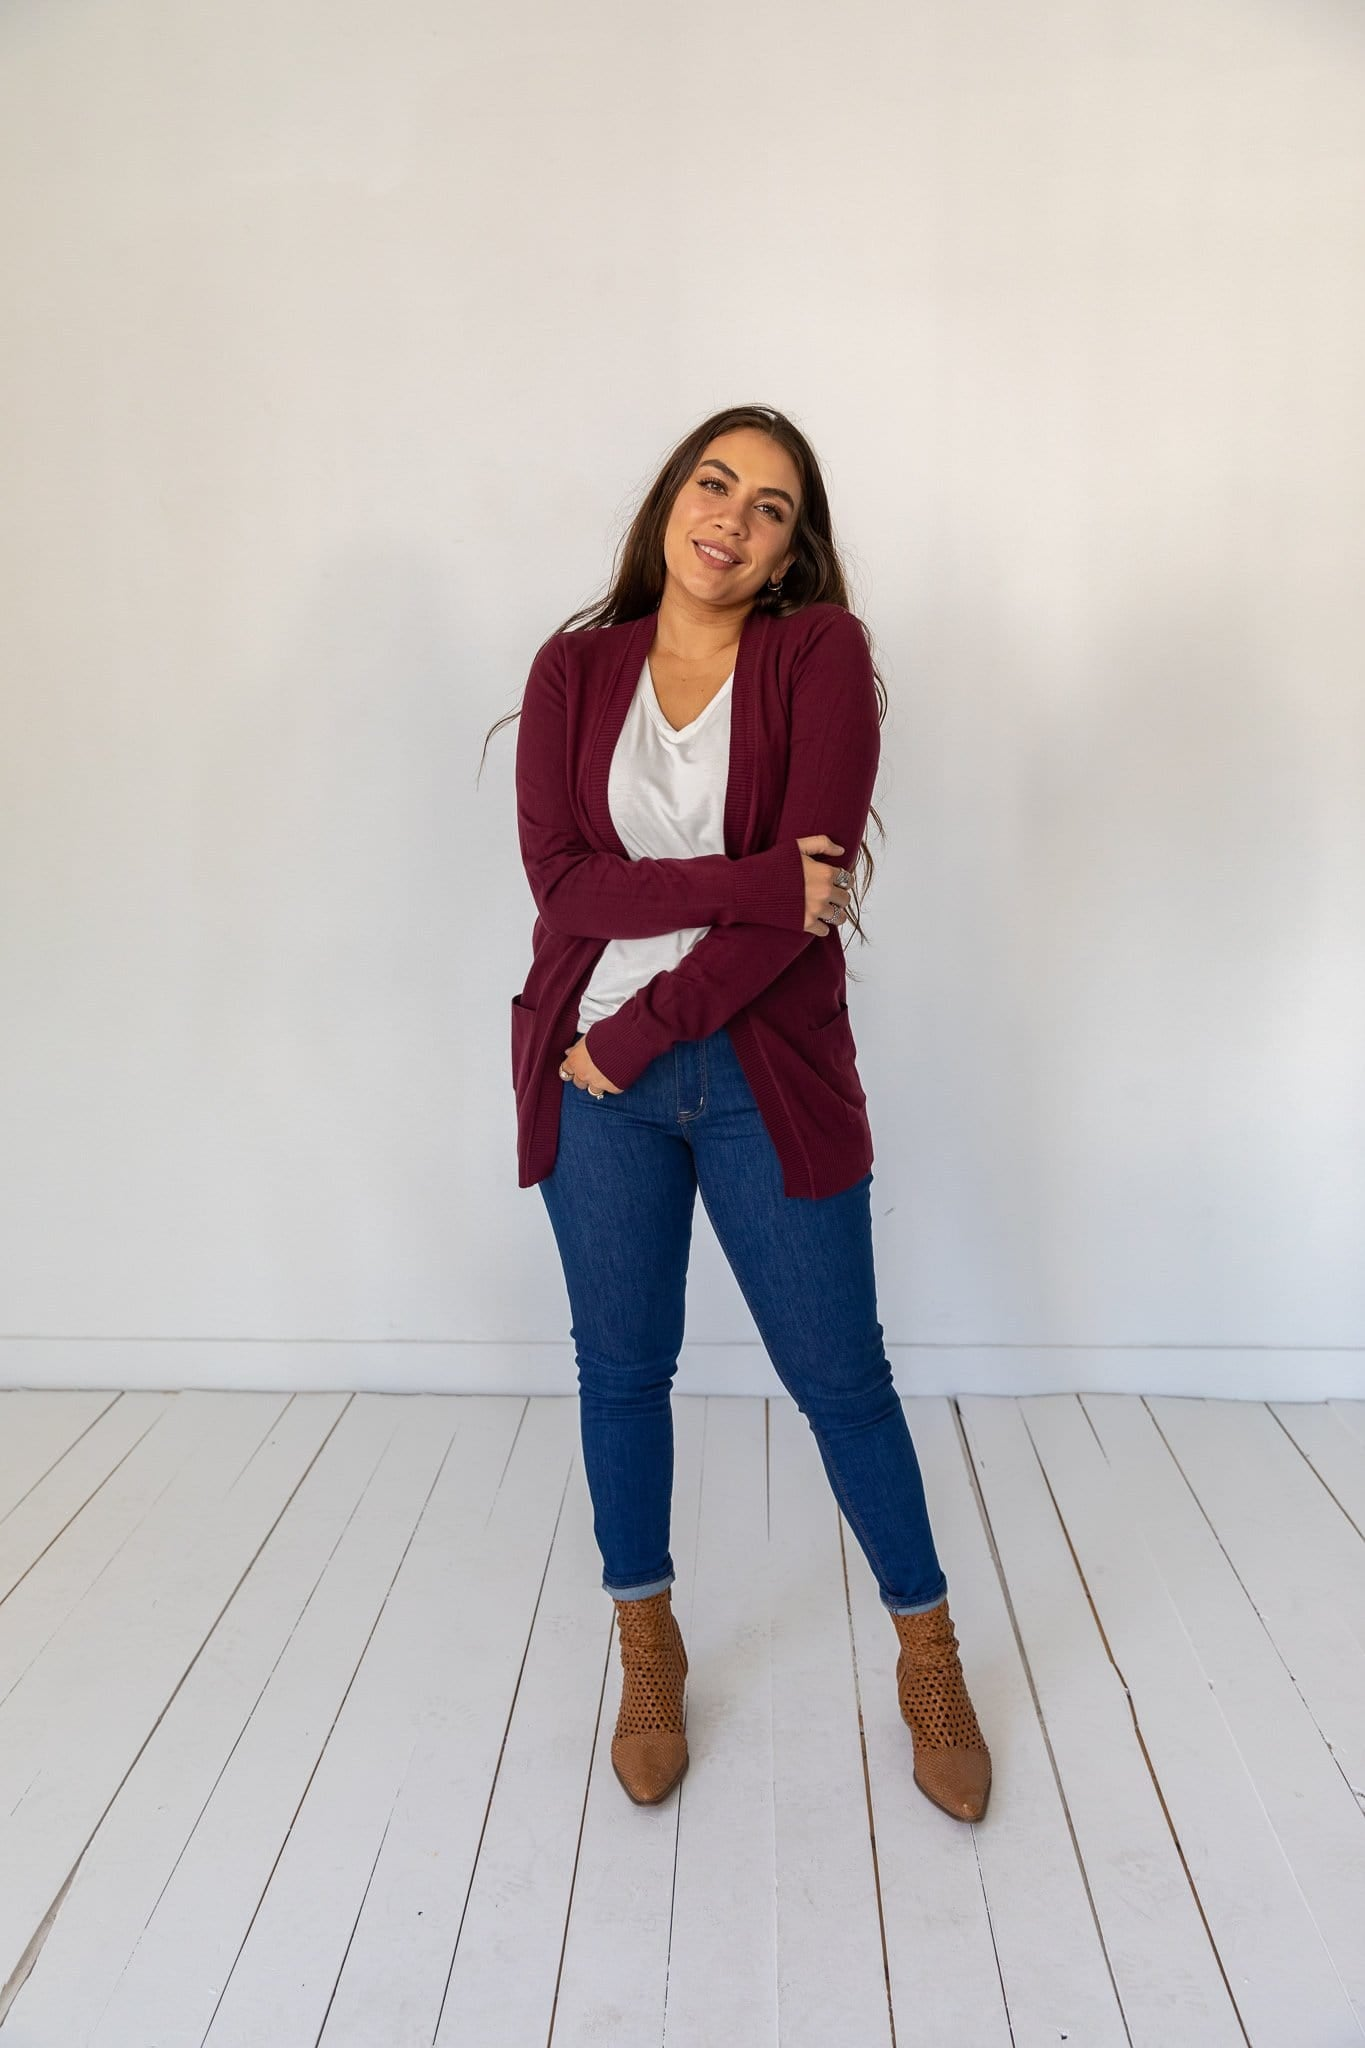 The Allston Soft Knit Cardigan in Chive, Mulberry and Oatmeal